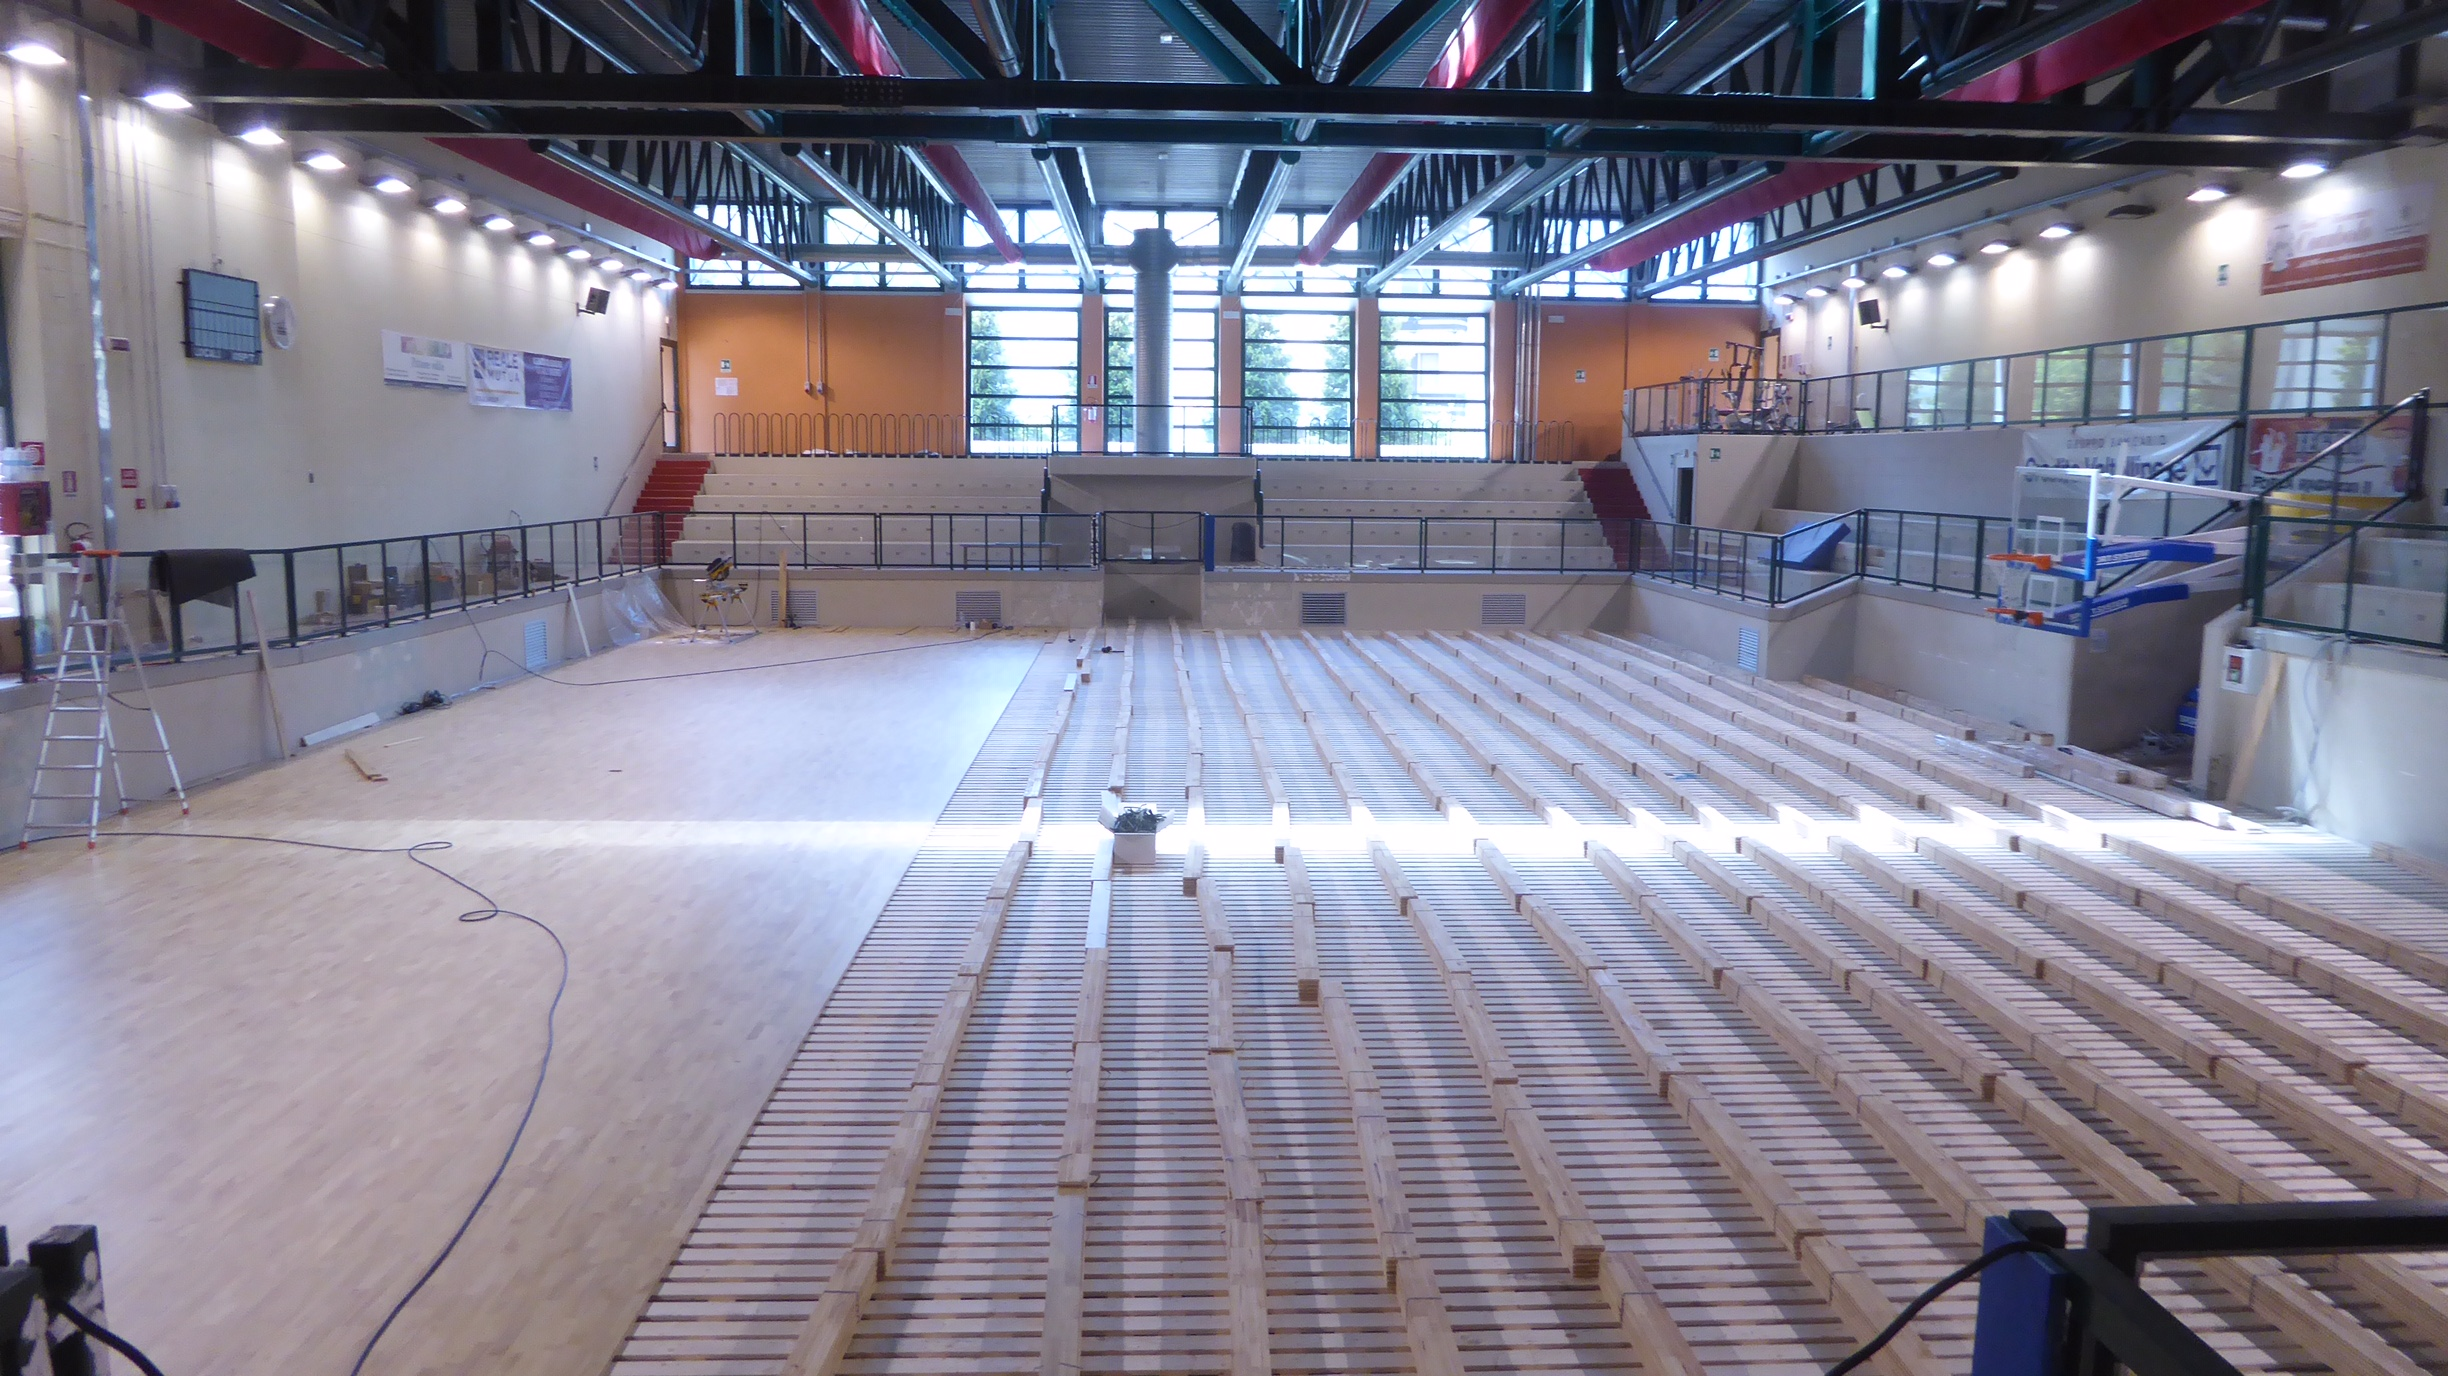 The Valtellina sports facility is starting to change